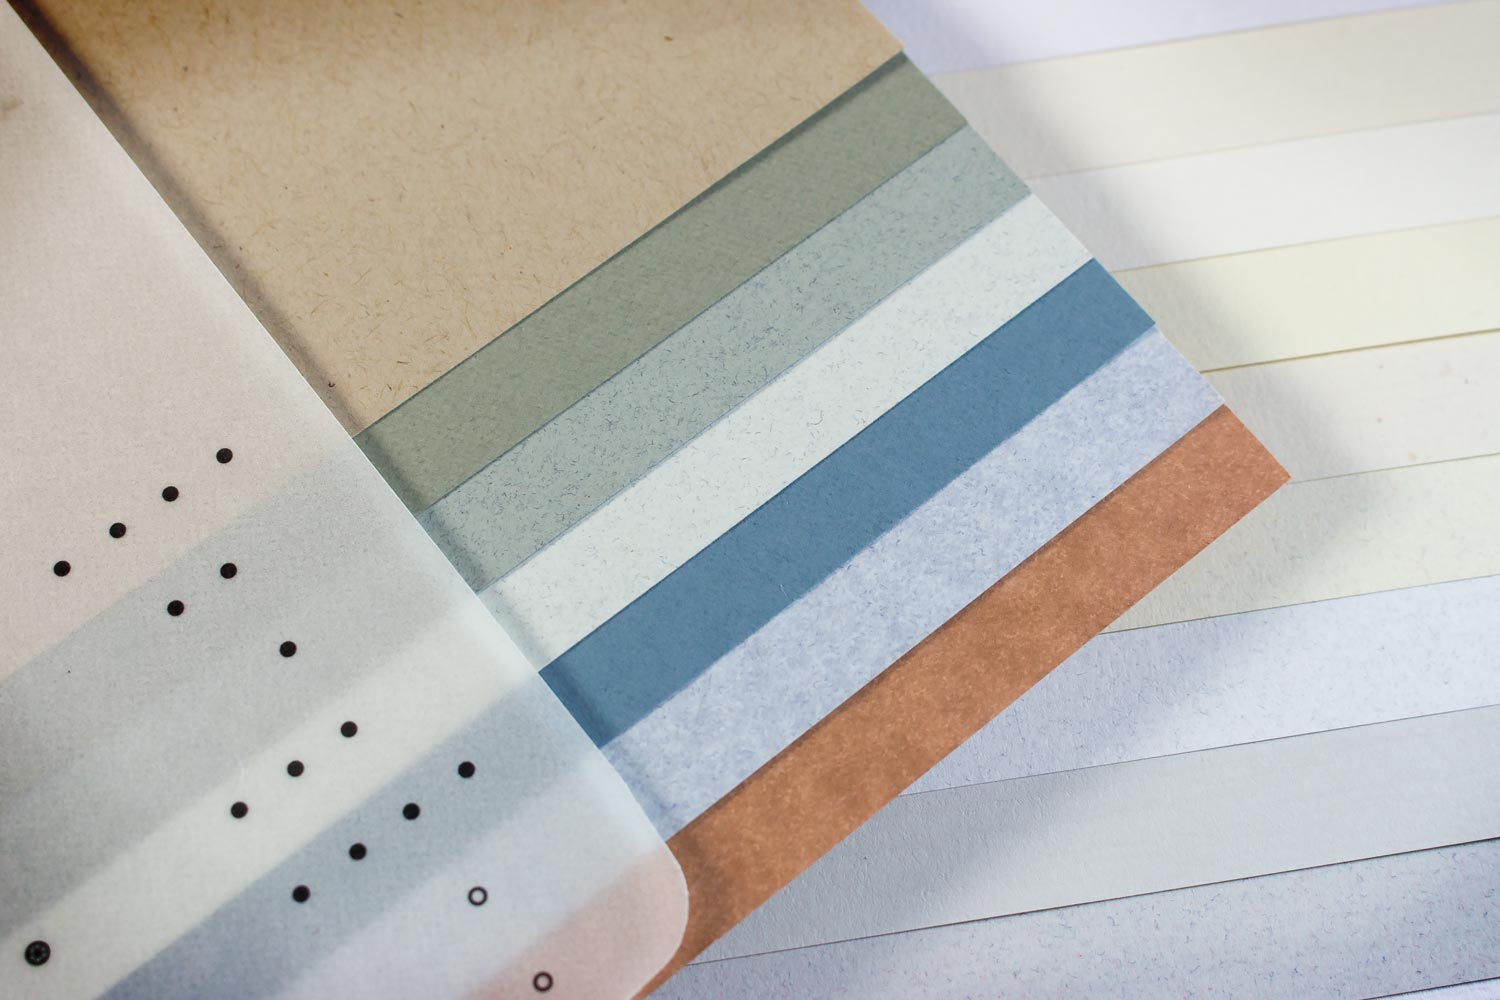 Paper options include white wove, colored wove and coated stocks